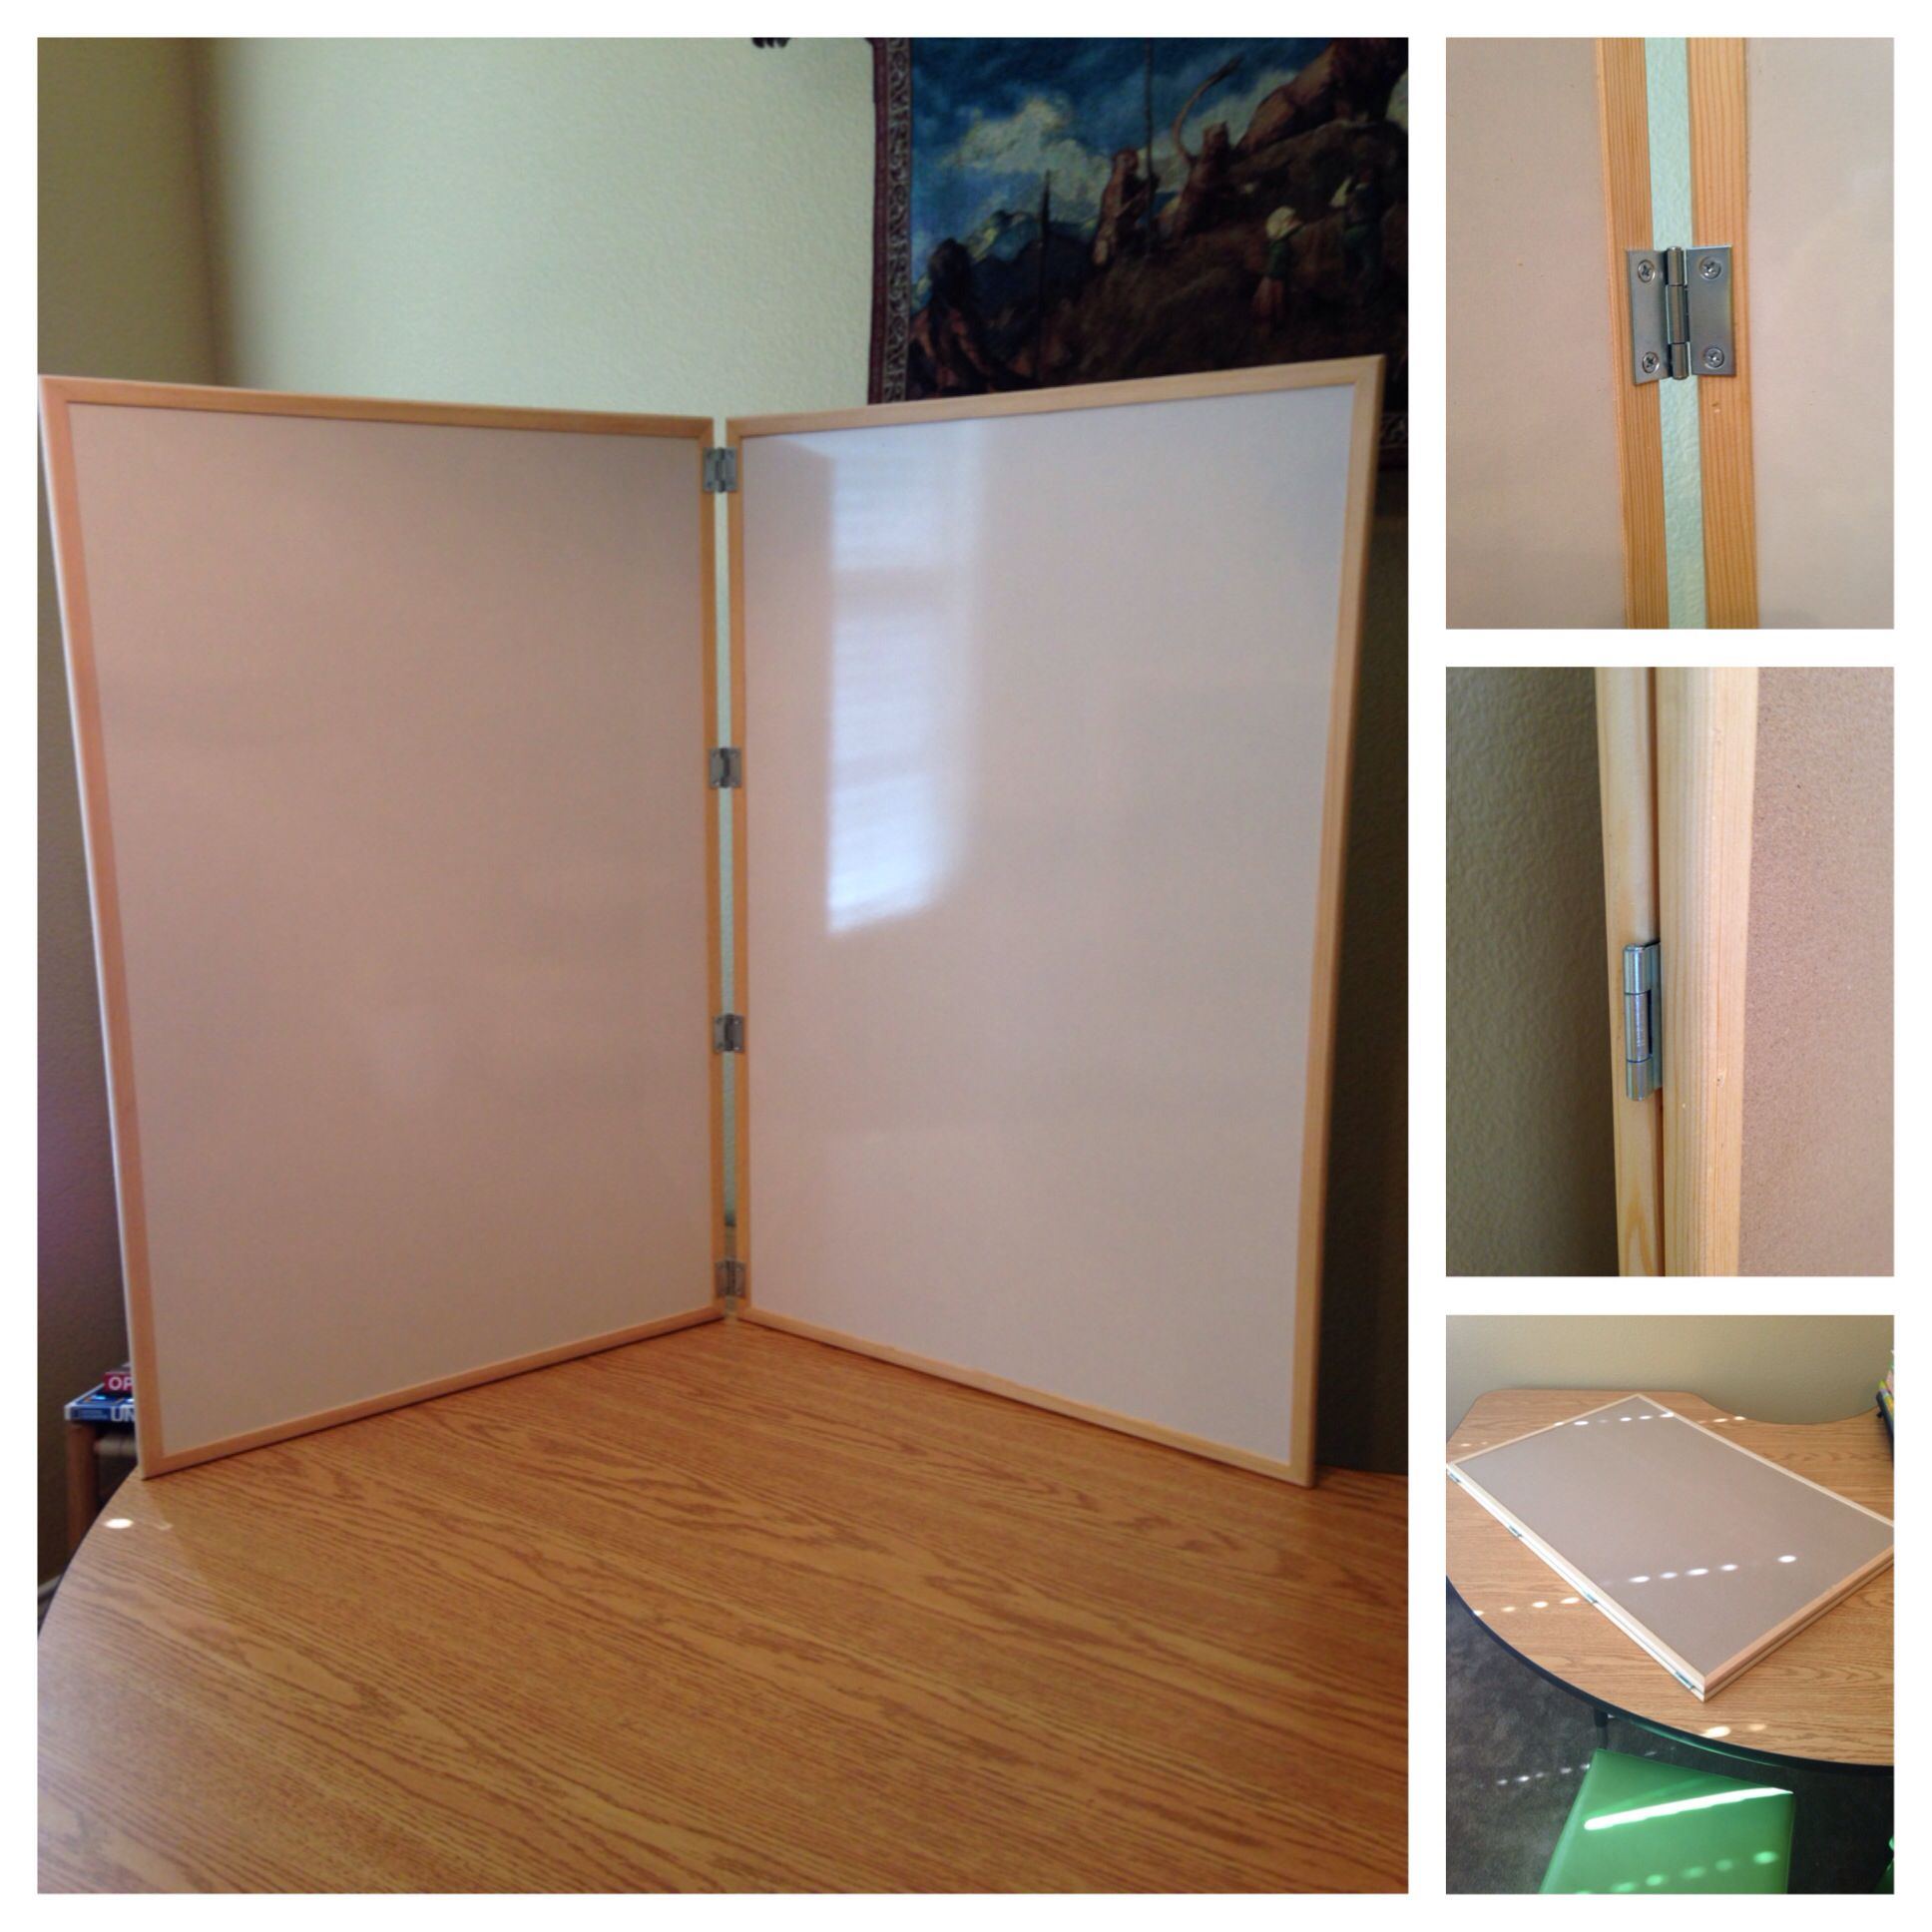 My 36 X 48 Diy Traveling Dry Erase Board 2 24x36 From Hobby Lobby And 4 1 5 Zinc Hinges From Lo Classical Conversations Homeschool Preschool Homeschool